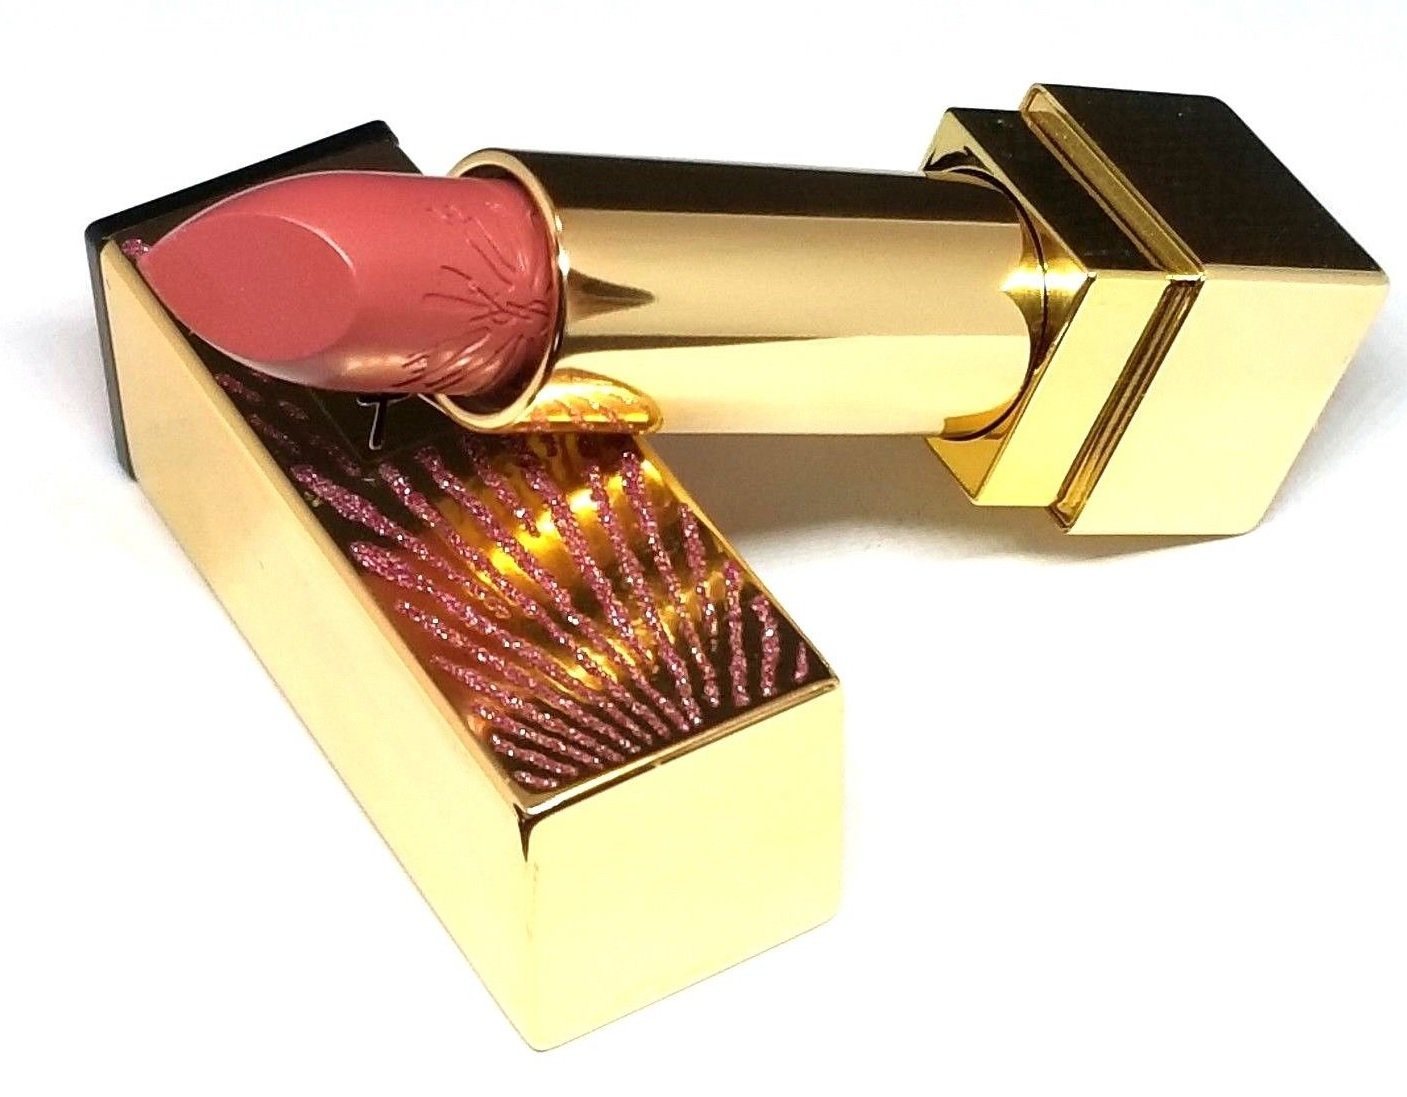 Yves Saint Laurent Rouge Pur Couture Lipstick .13 oz - Le Nu 70 (Dazzling Light Edition)